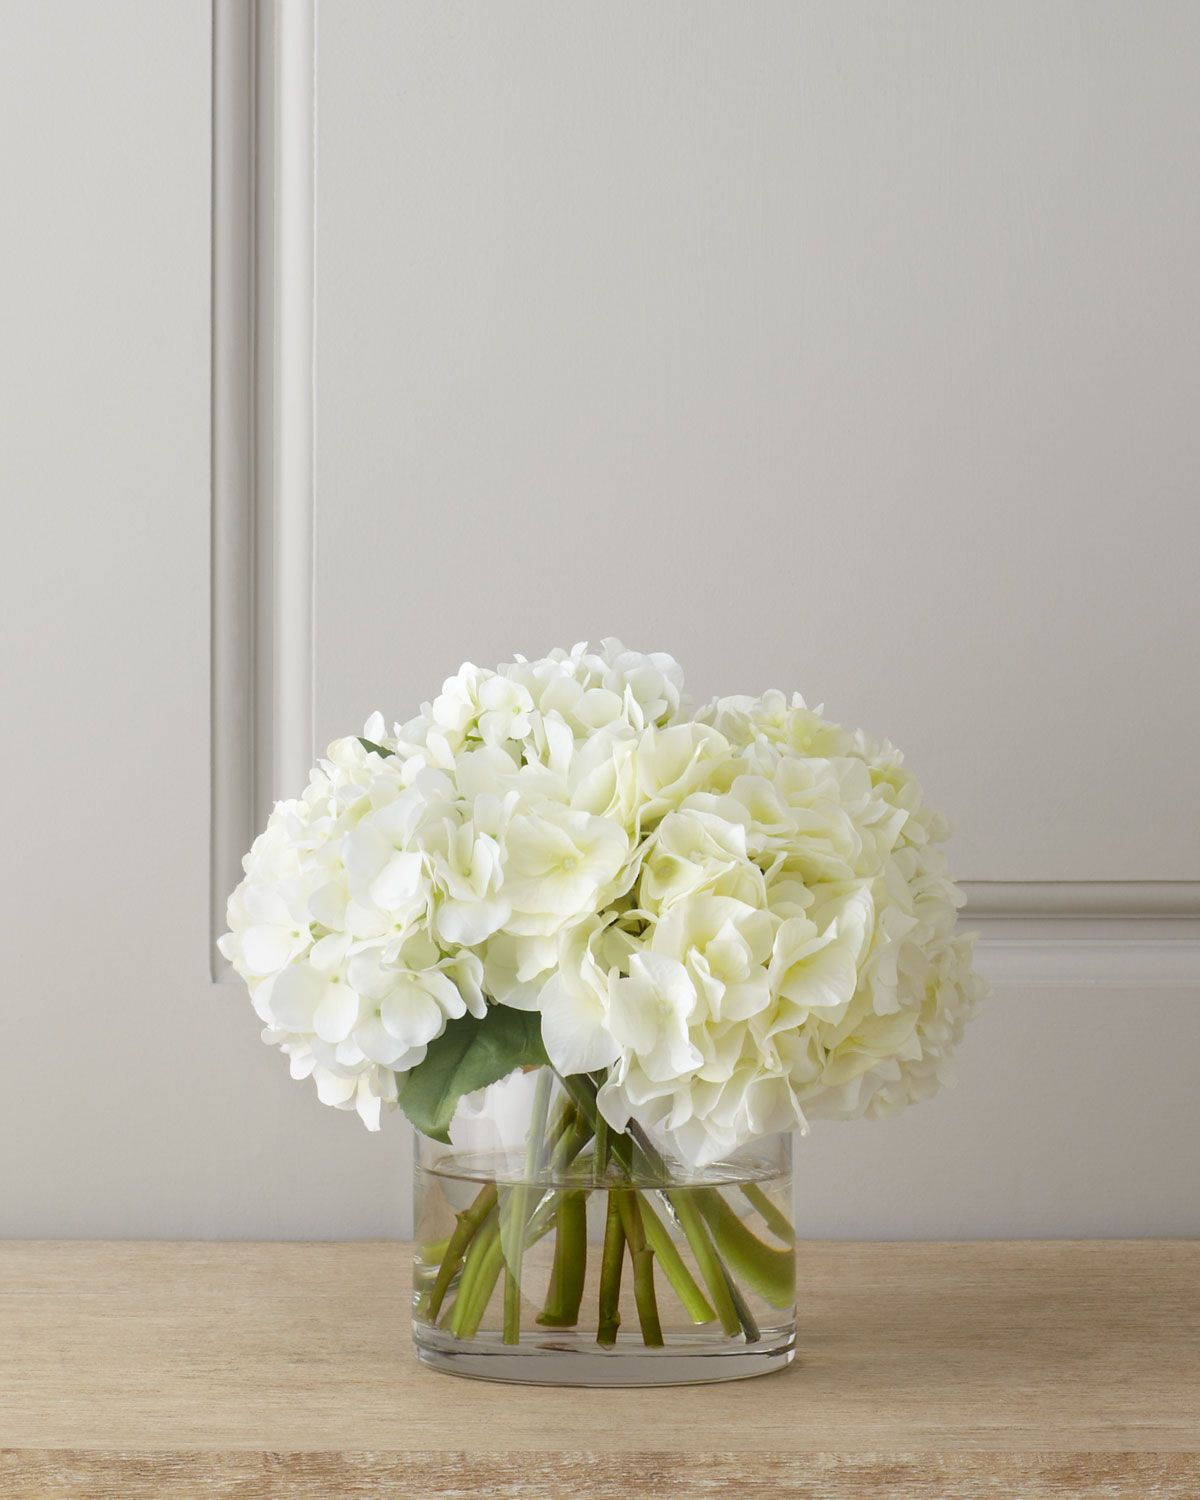 Examples Of The Feeling I Like In Centerpieces If Not Necessarily The Colors Or White Hydrangea Centerpieces White Hydrangea Bouquet Hydrangea Centerpiece Diy